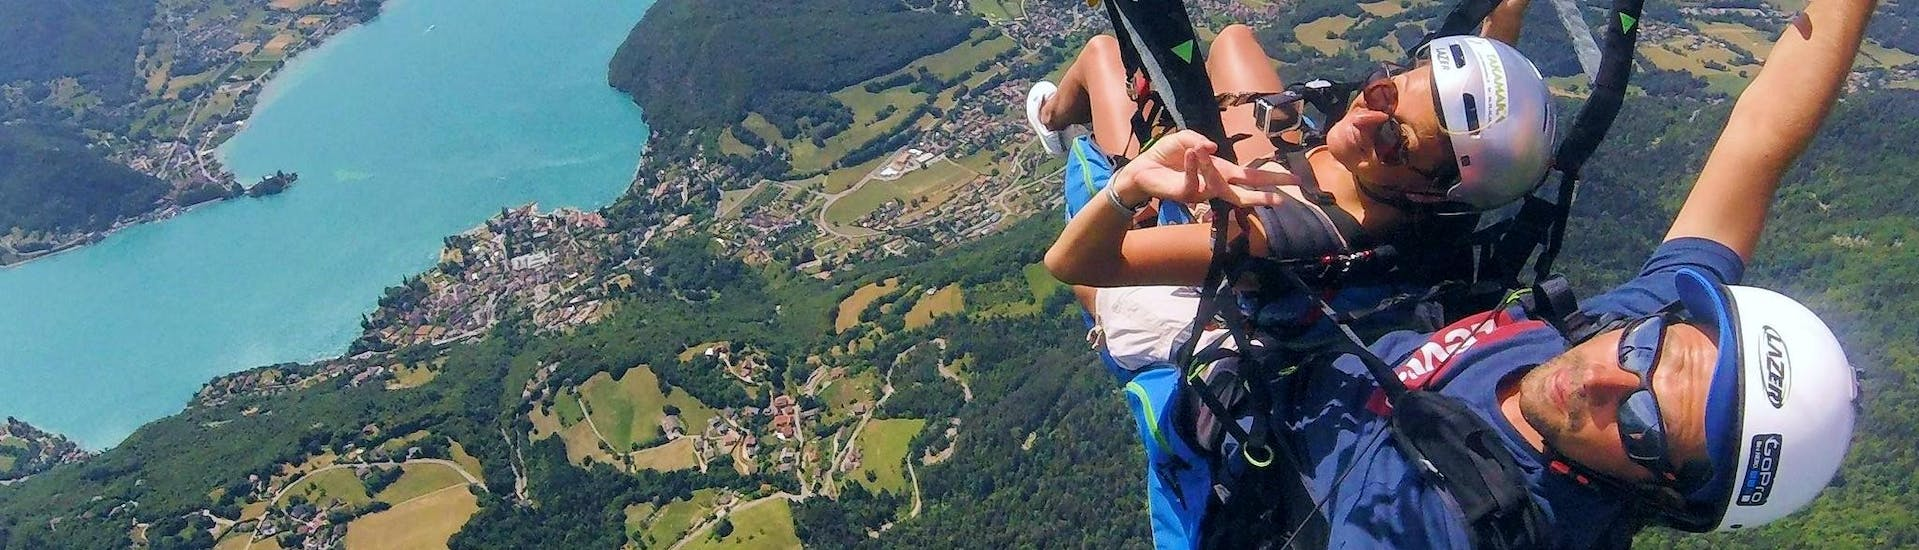 tandem-paragliding-discovery-lake-annecy-takamaka-annecy-hero